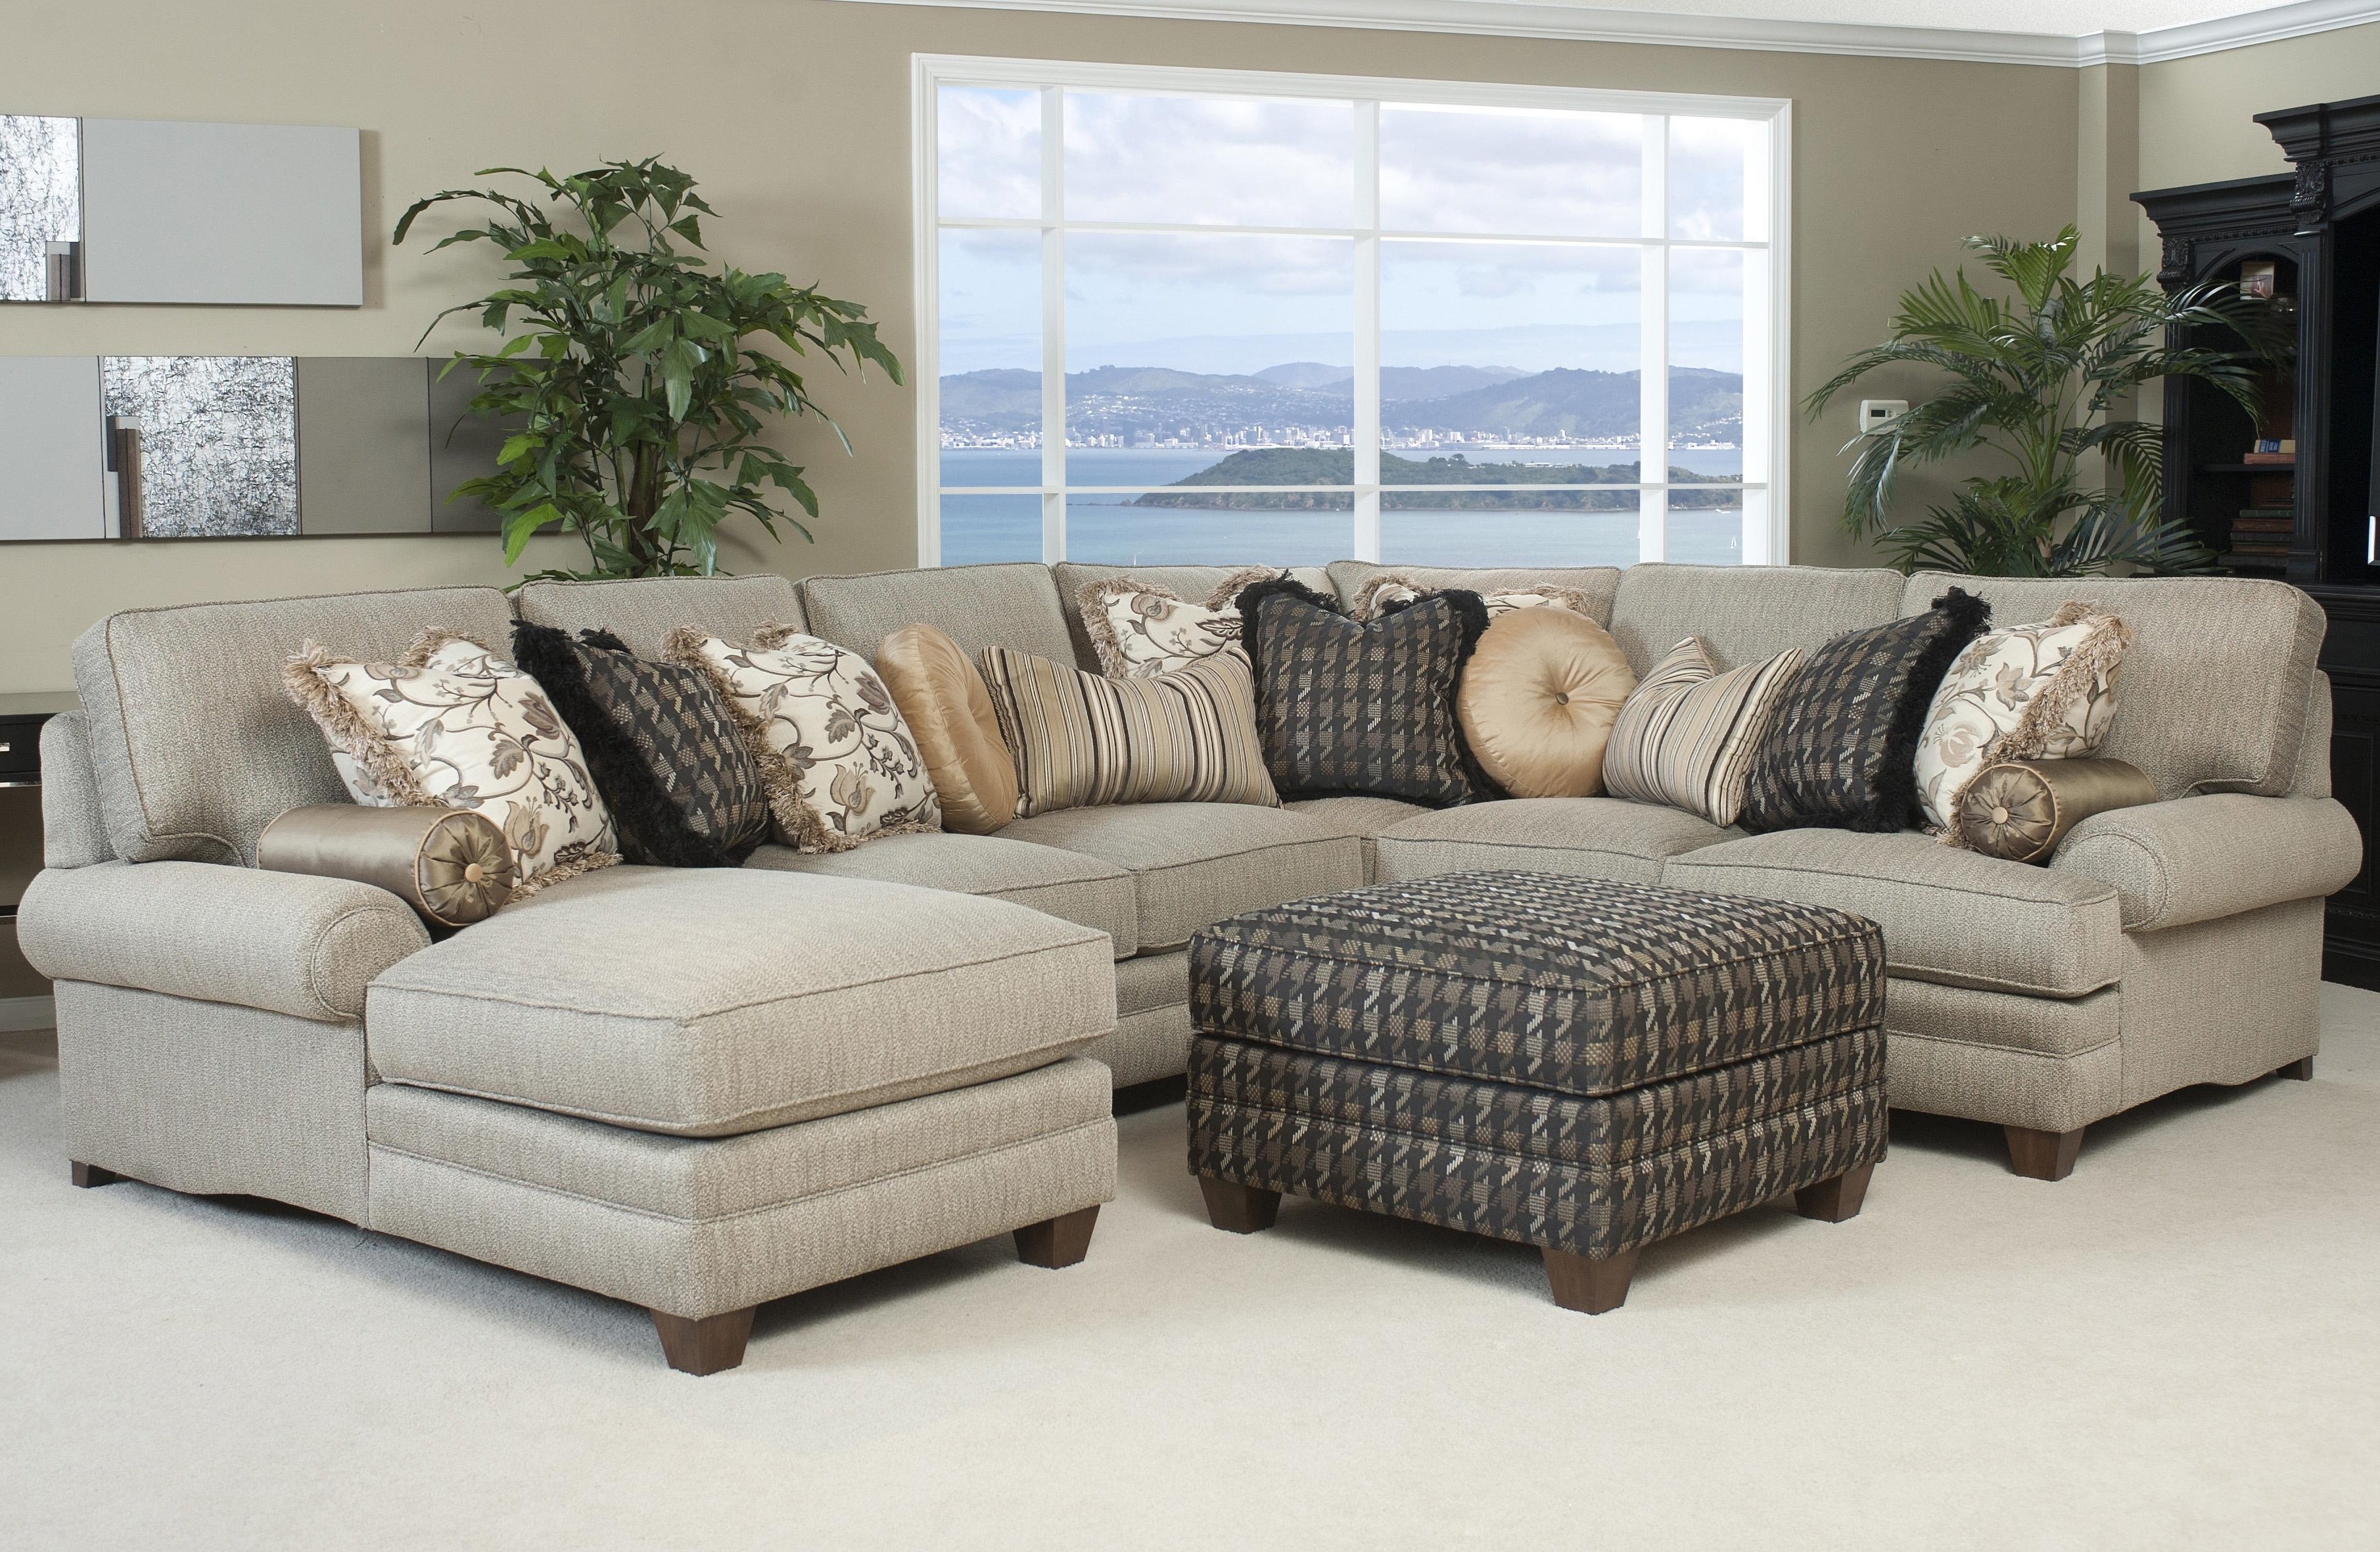 Sectional Sofas Within Trendy Sectional Sofa Design: Best Of The Best Traditional Sectional (View 11 of 15)